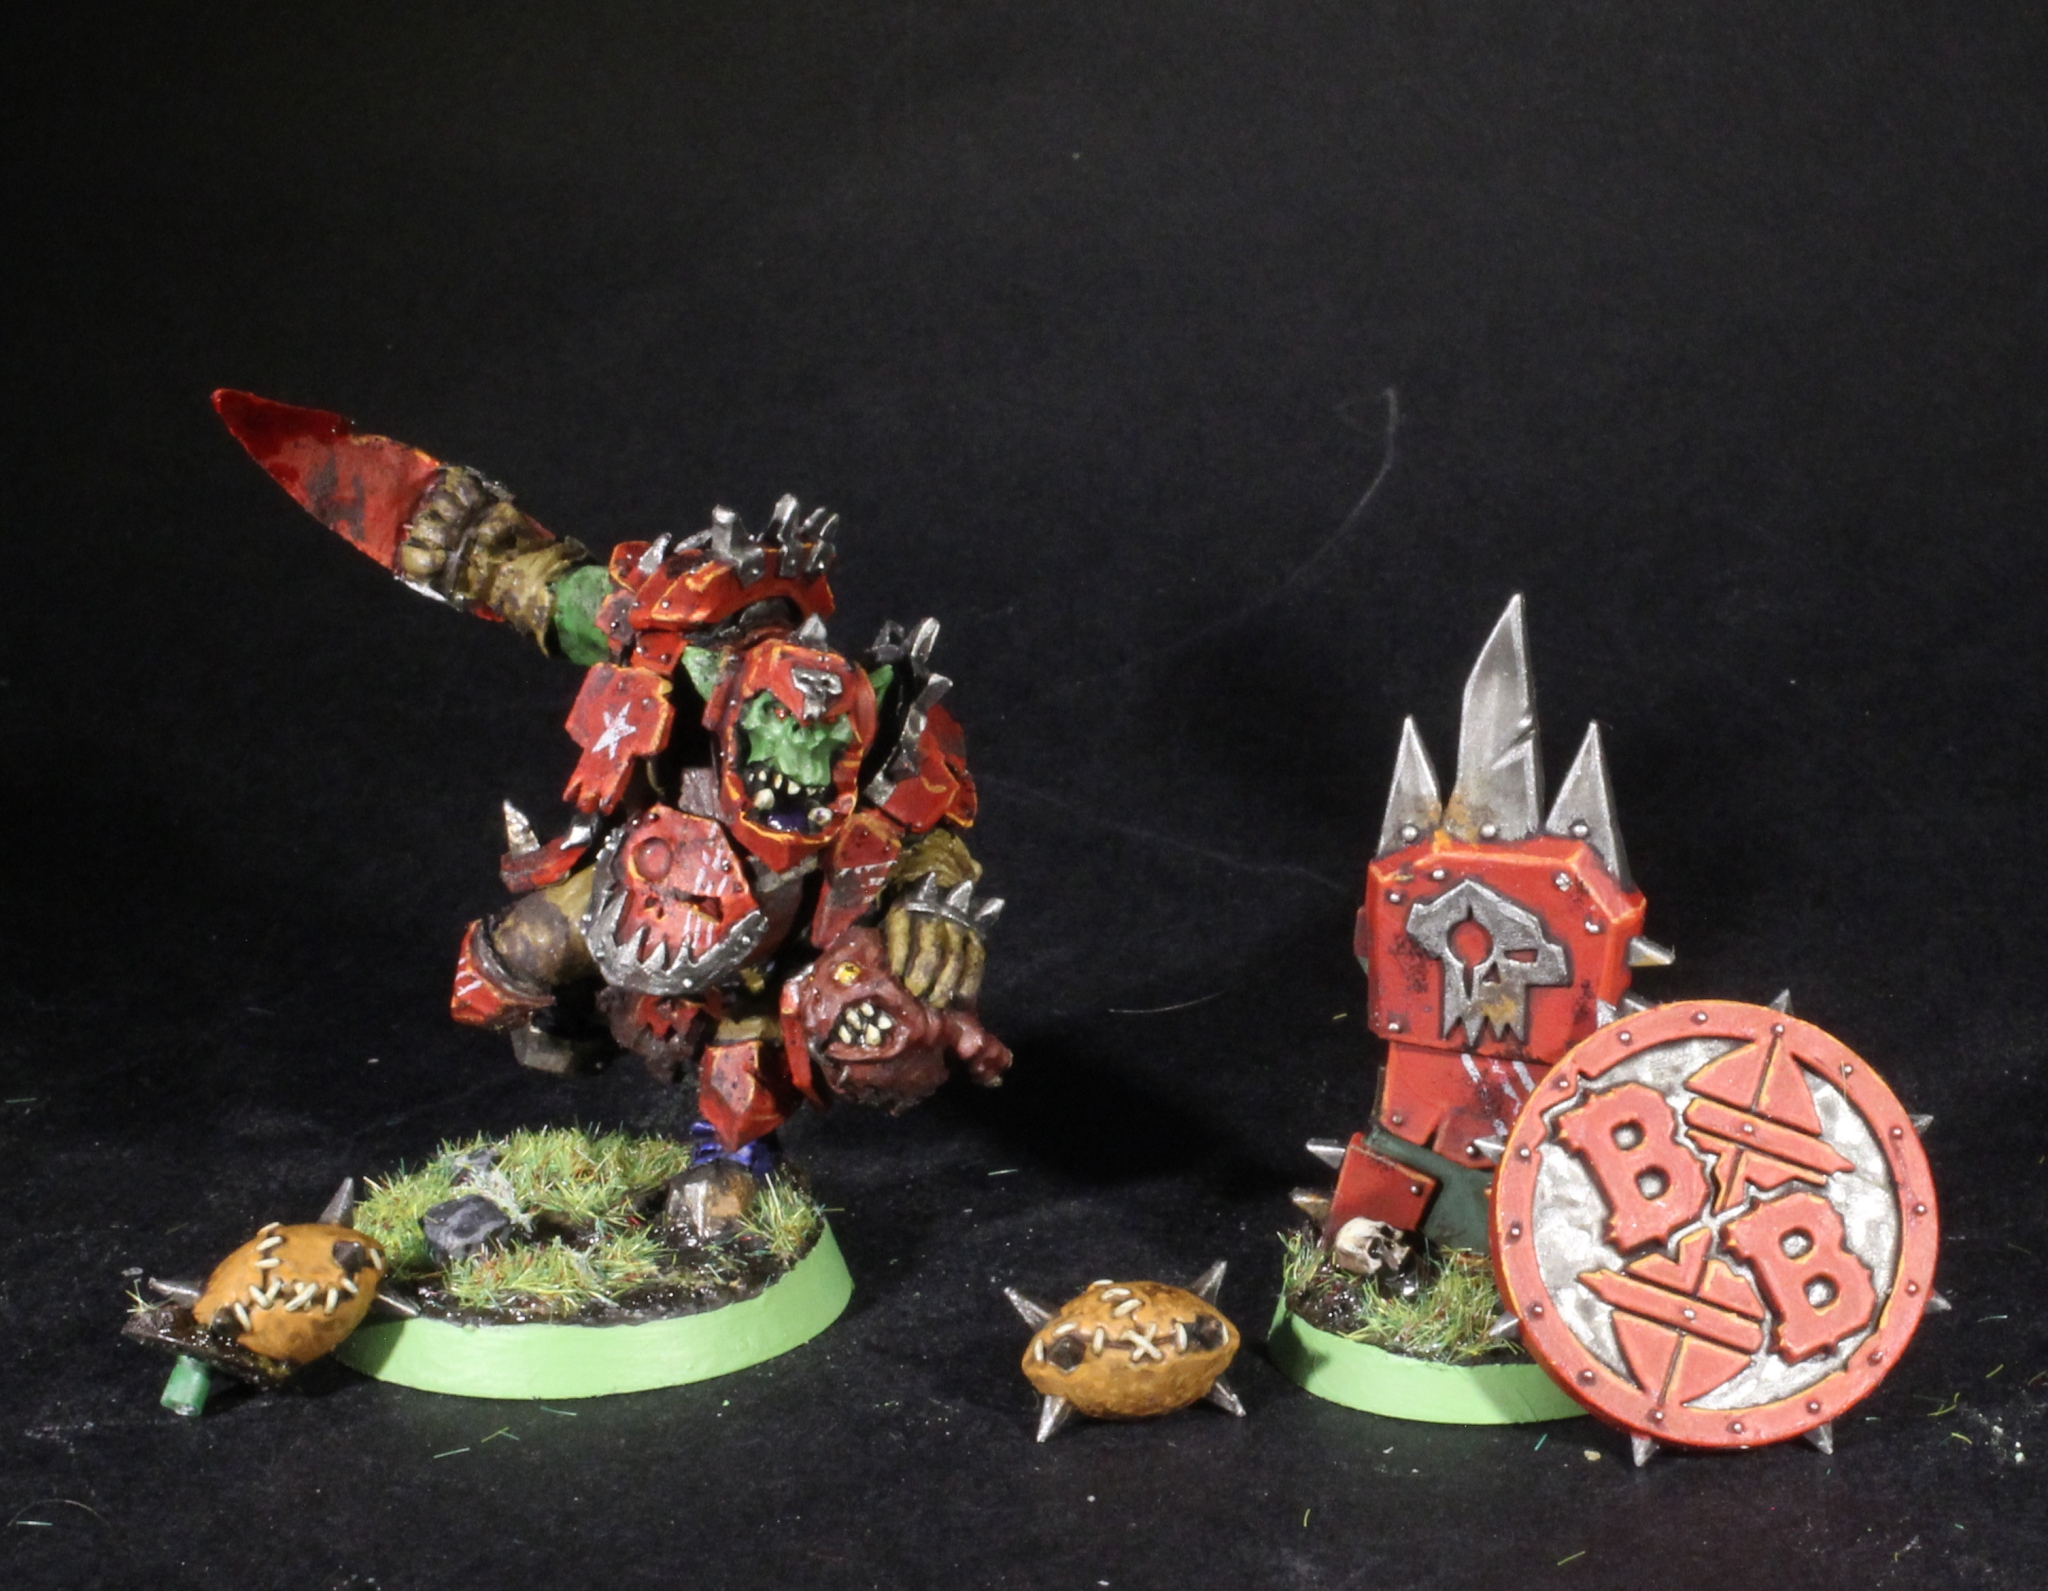 varag ghoul chewer and peripherals